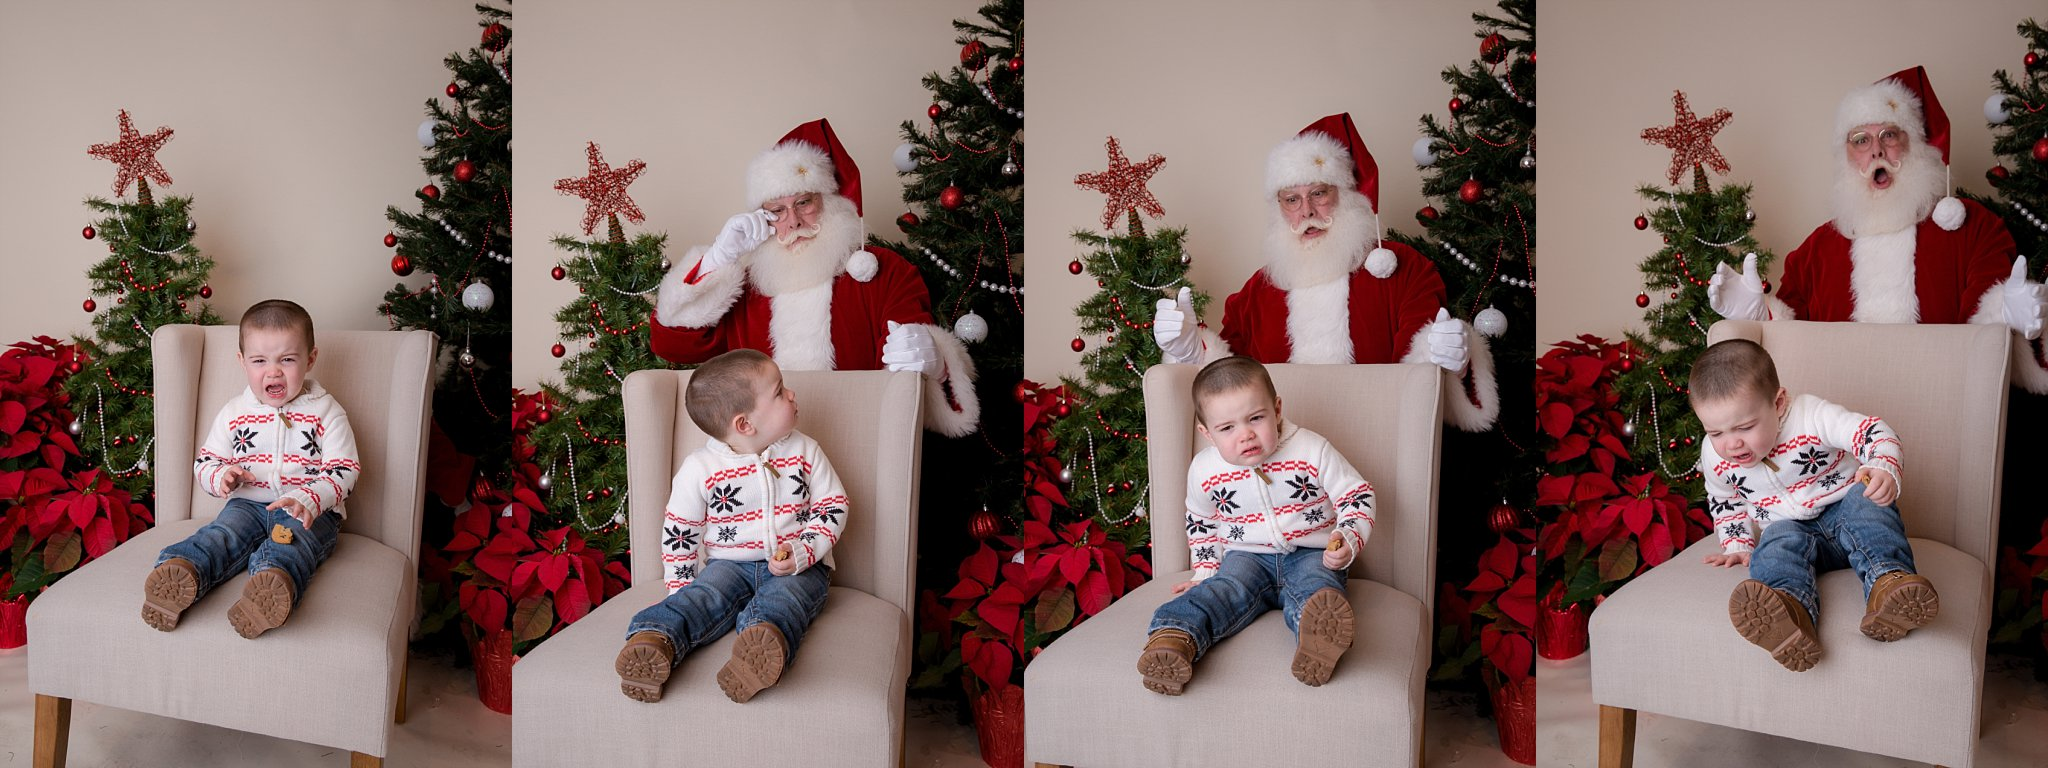 boy crying when he saw santa clause in south jersey photography studio